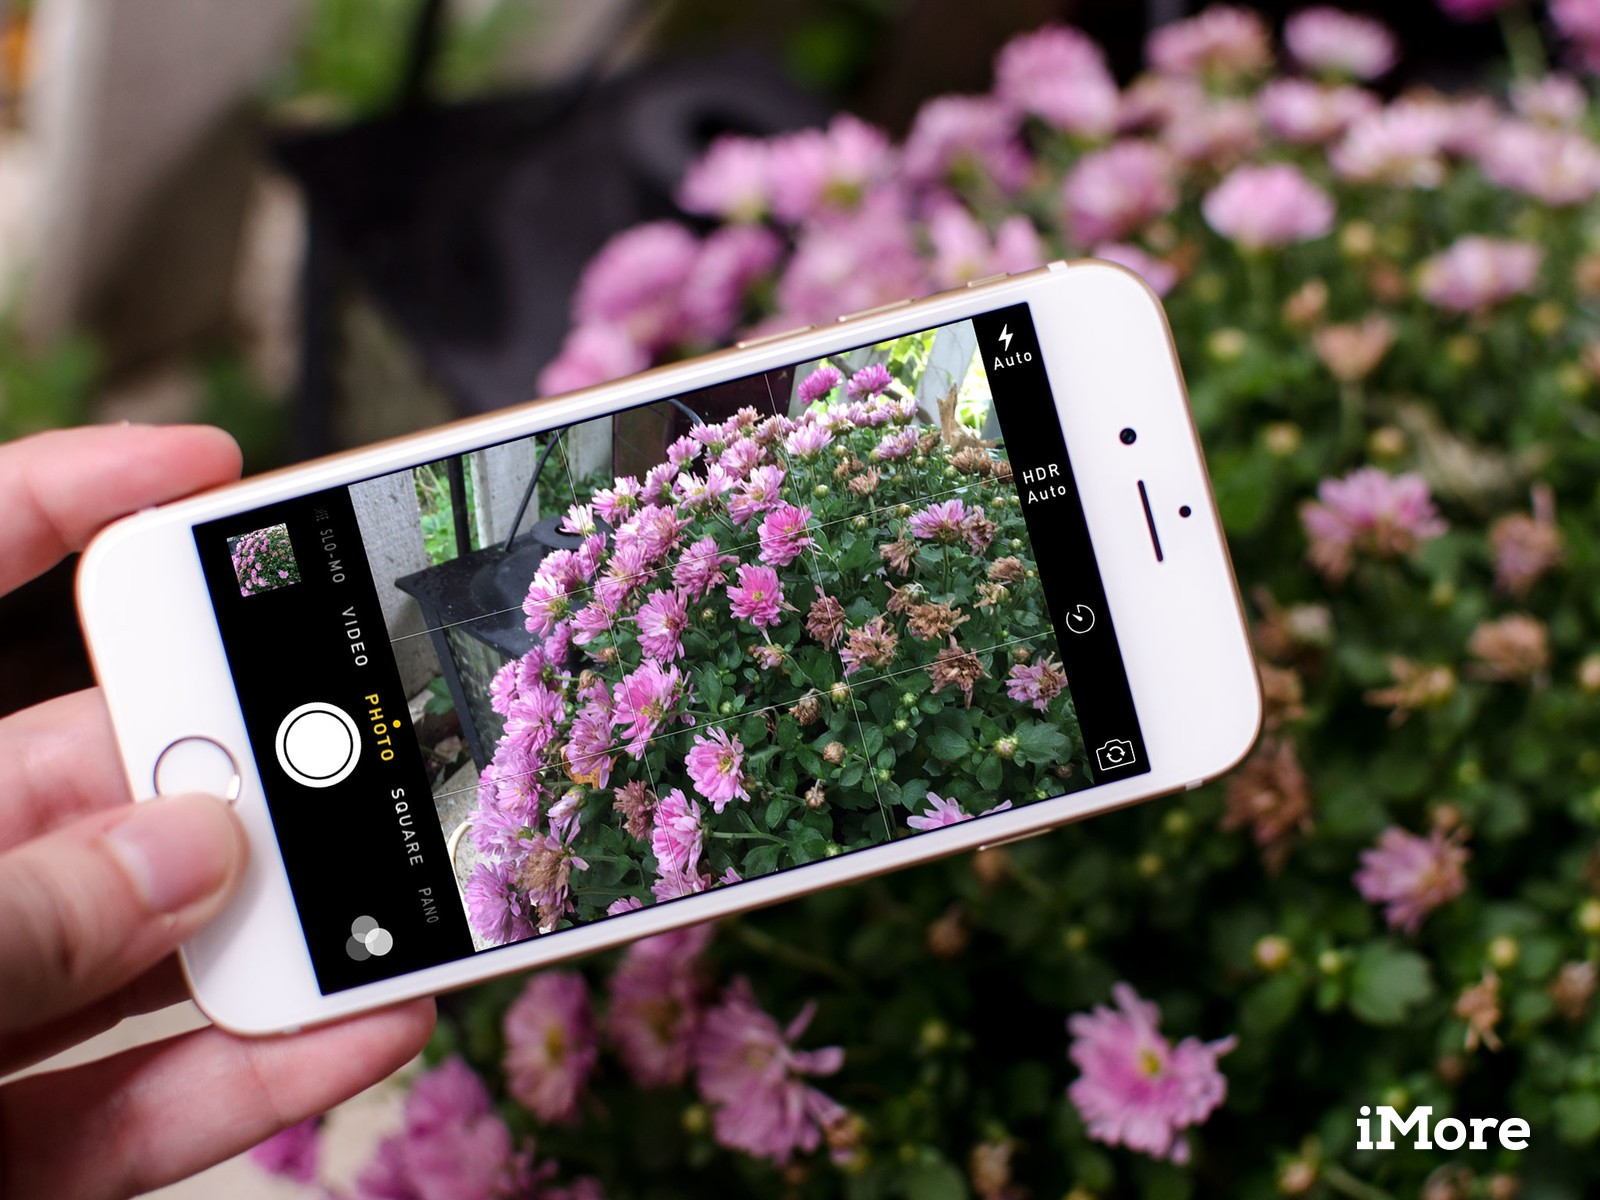 Ultimate guide to using the camera on iPhone